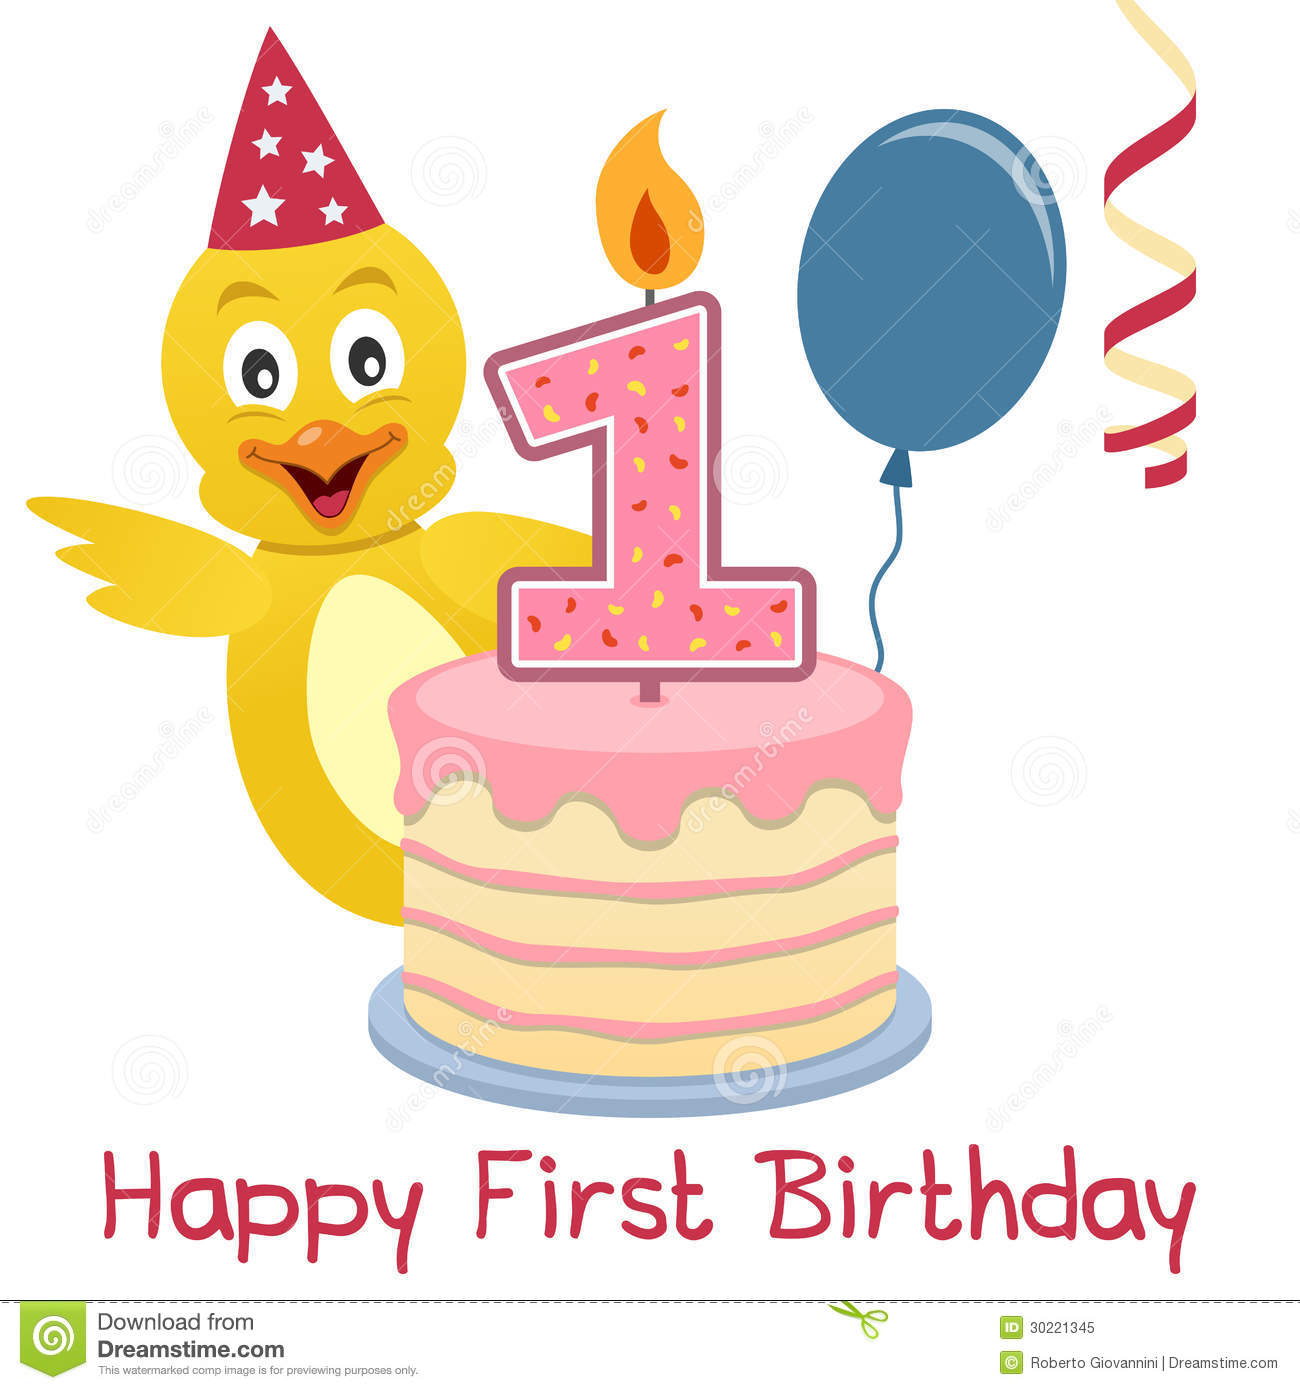 1st birthday card wishes ; happy-first-birthday-greeting-card-funny-cute-chick-birthday-cake-numbered-candle-red-balloon-blue-streamer-30221345